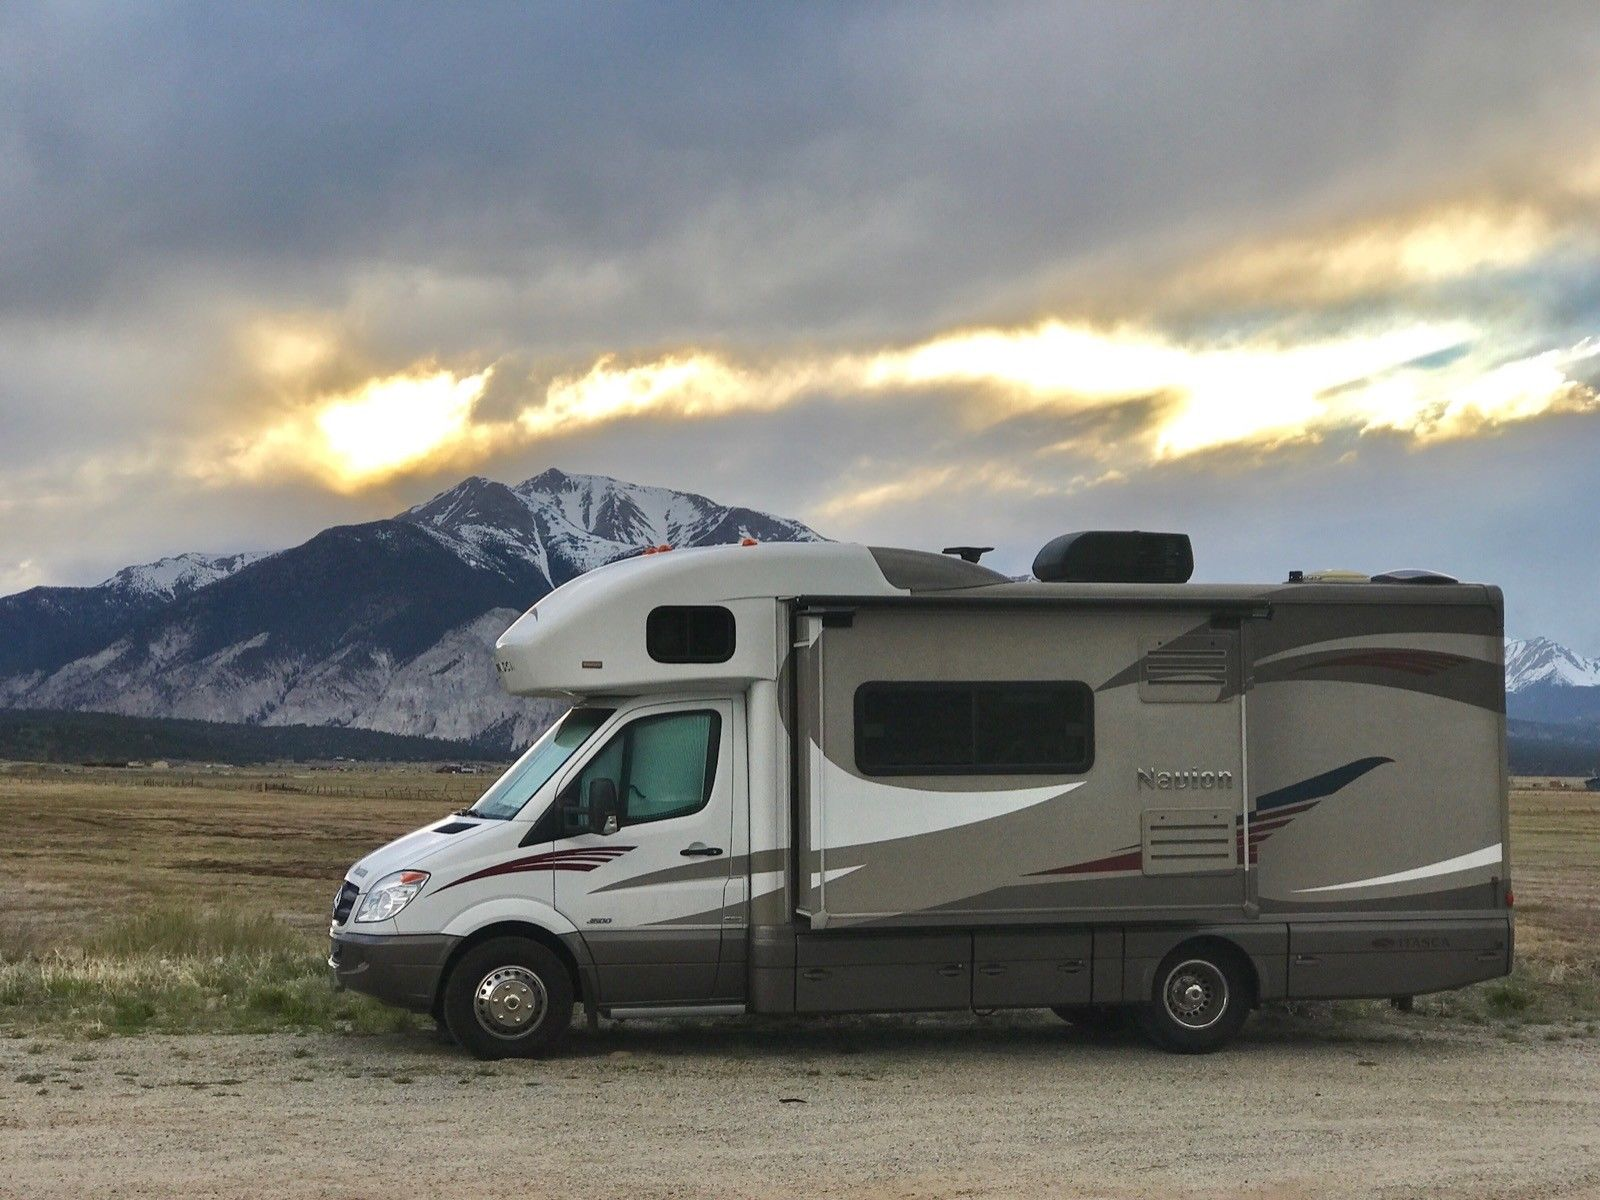 fully loaded 2014 Itasca Navion camper for sale